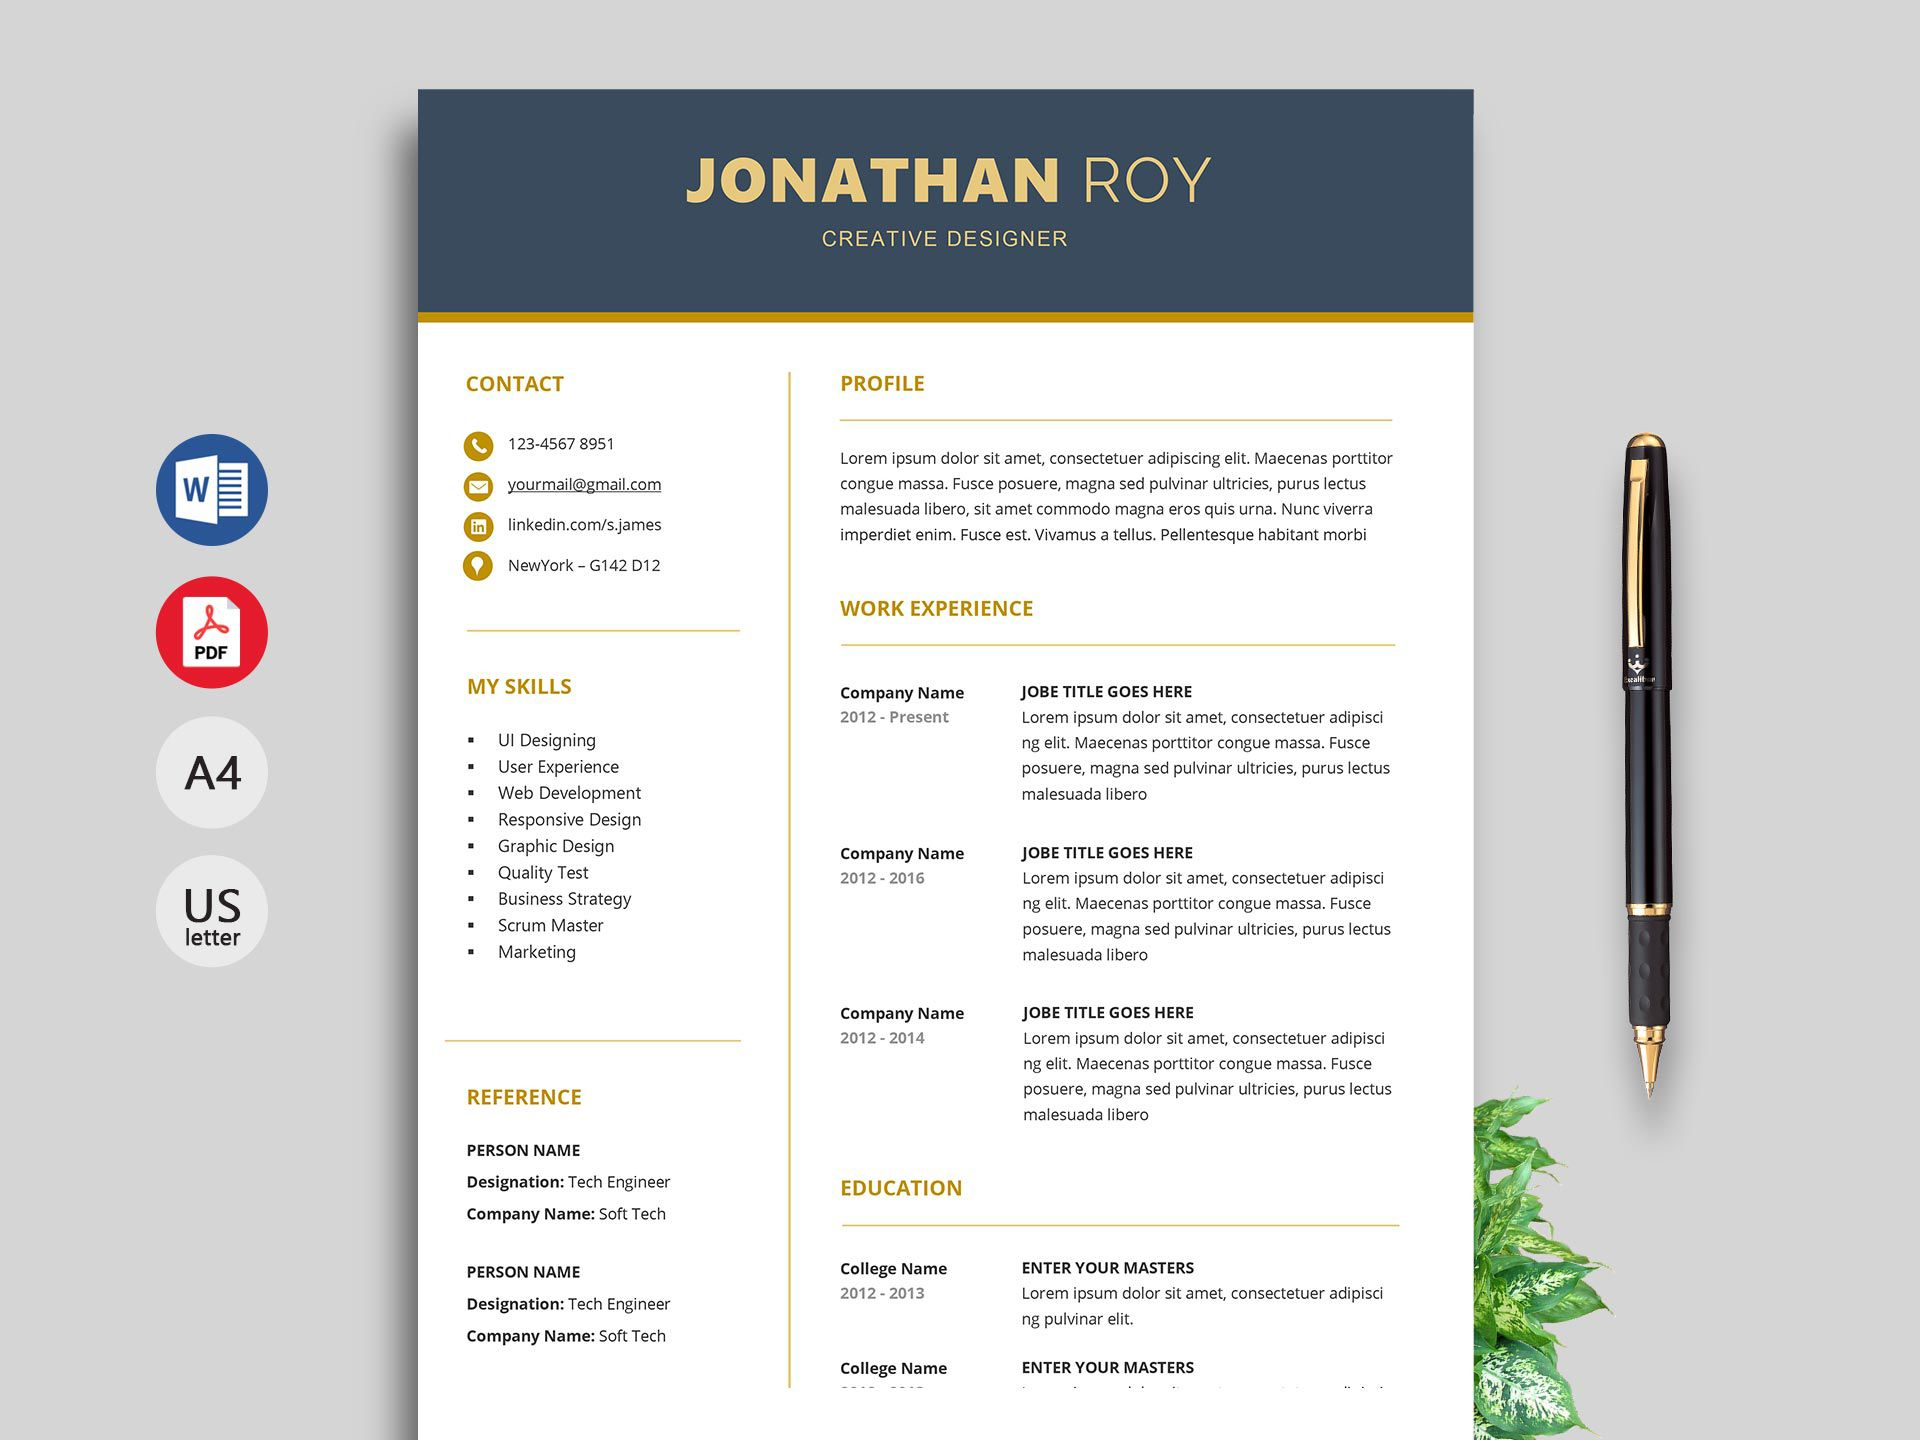 003 Simple Word Template For Resume Sample  Resumes M Free Best Document DownloadFull